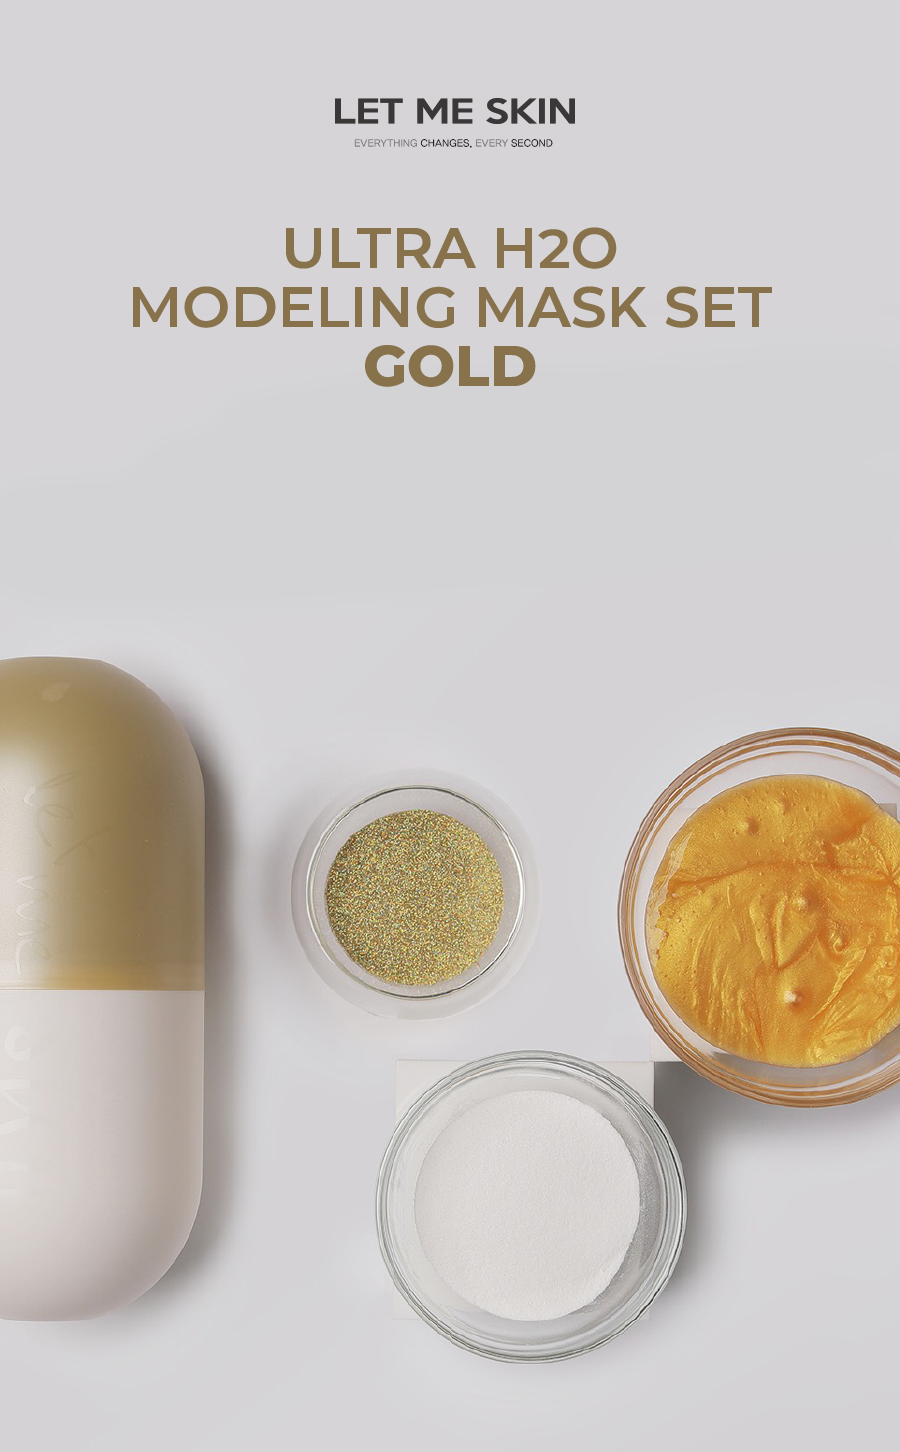 OLIVIA NZ Store online | Ultra H2O Modeling Mask Set / Gold